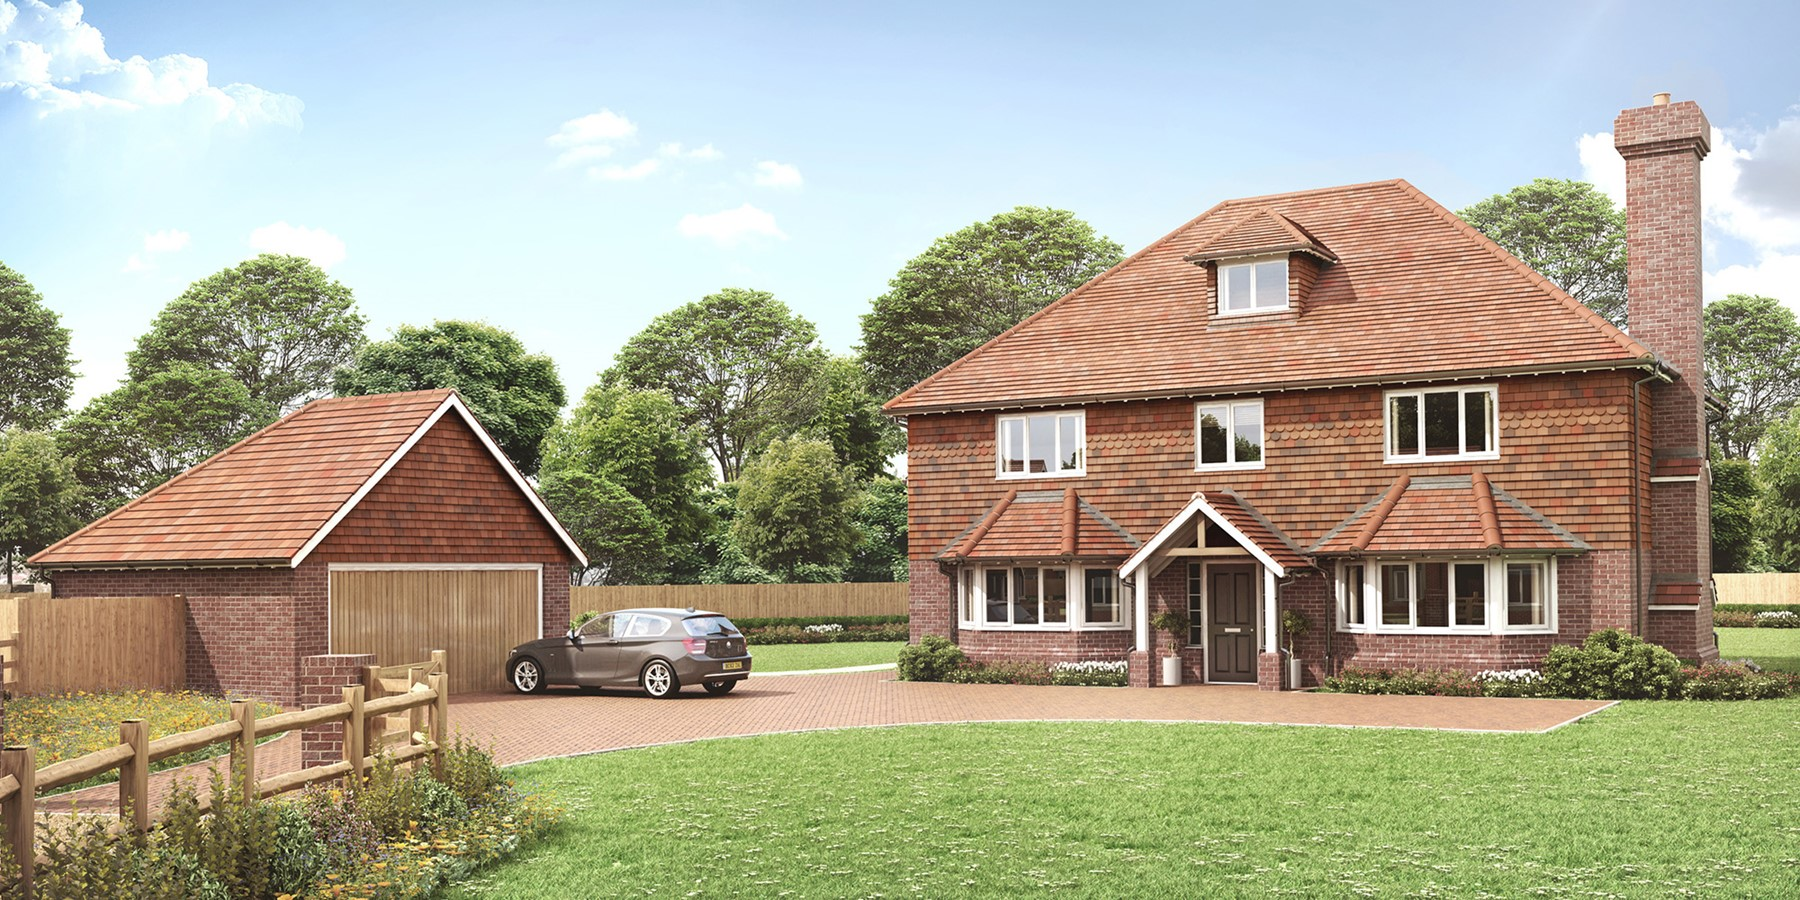 Introducing The Orchard, Tenterden